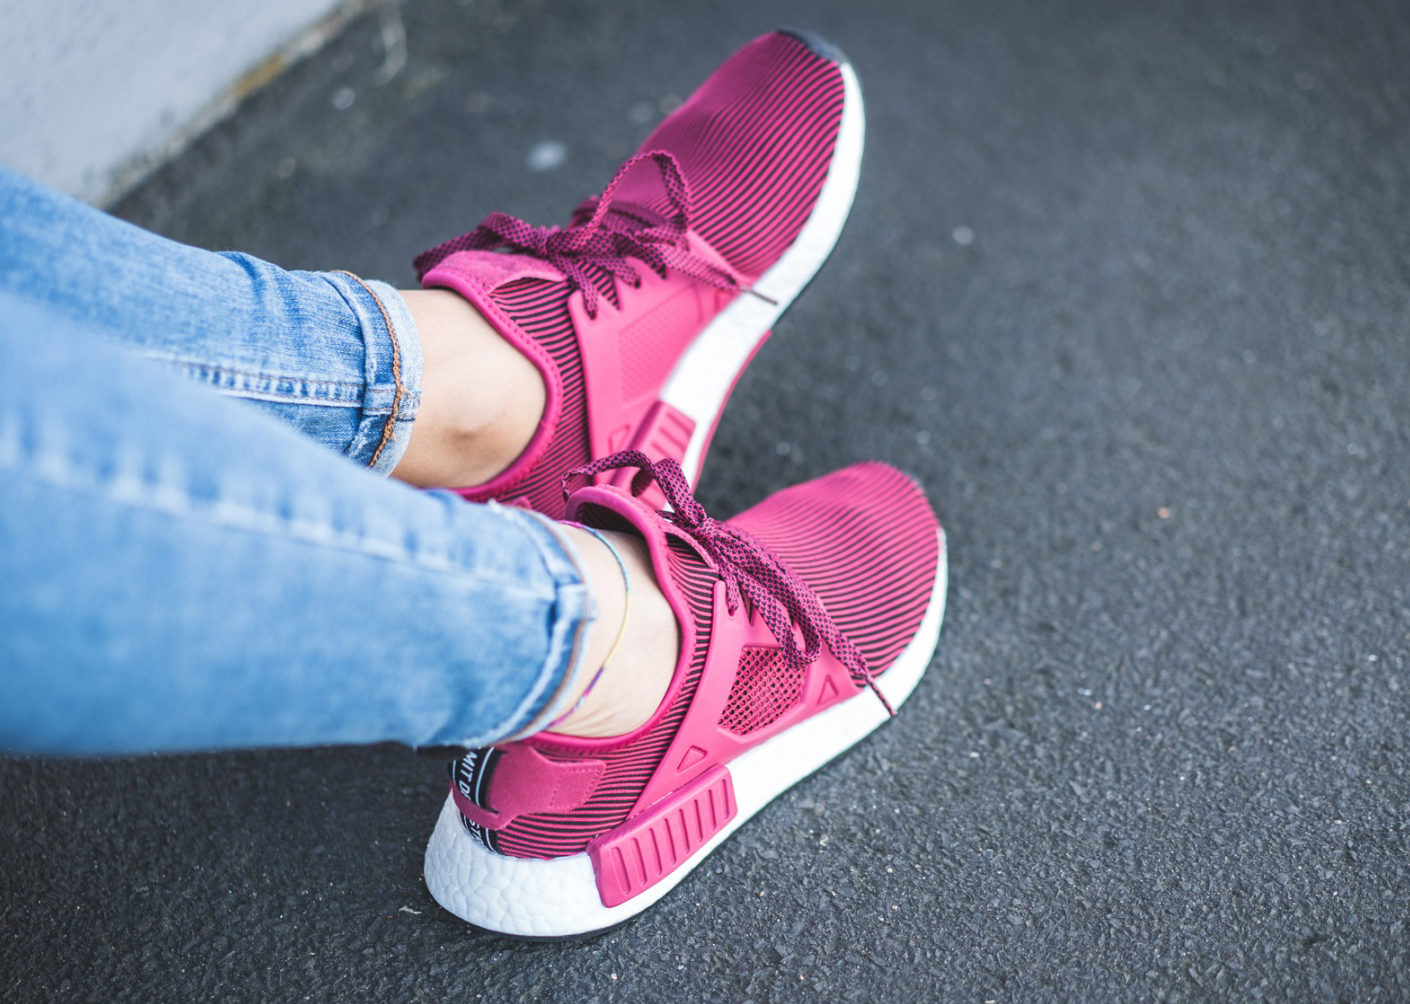 half off 9c6d4 7751b Adidas NMD XR1 Pink | Sole Collector